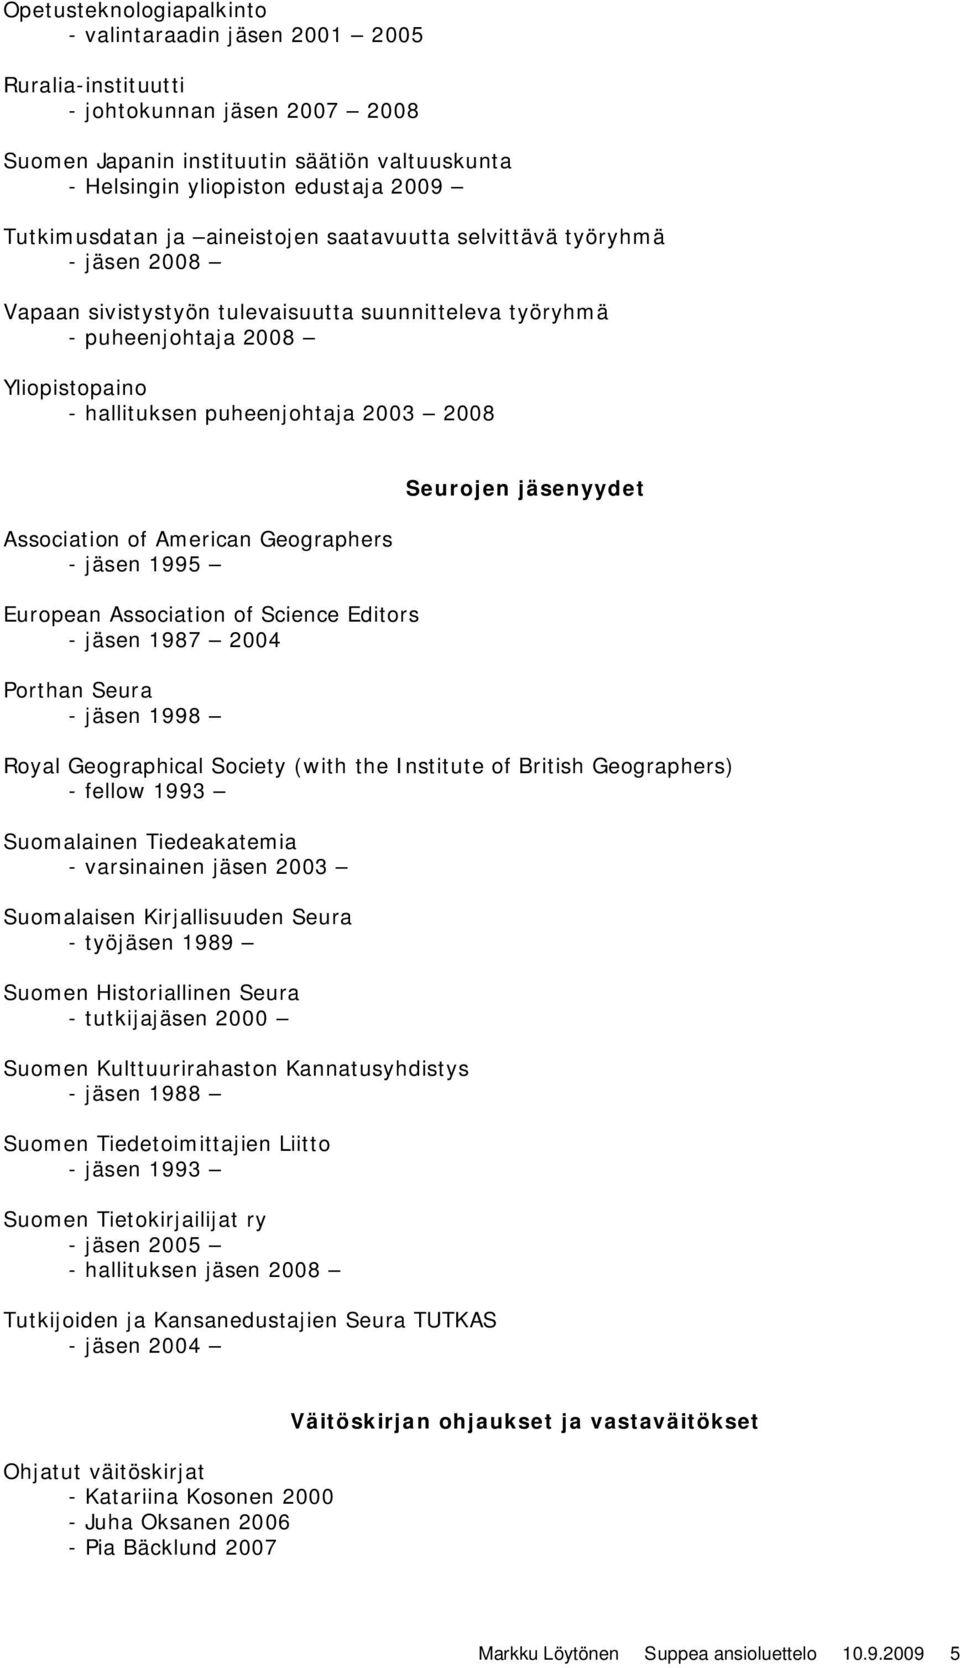 Association of American Geographers - jäsen 1995 European Association of Science Editors - jäsen 1987 2004 Porthan Seura - jäsen 1998 Seurojen jäsenyydet Royal Geographical Society (with the